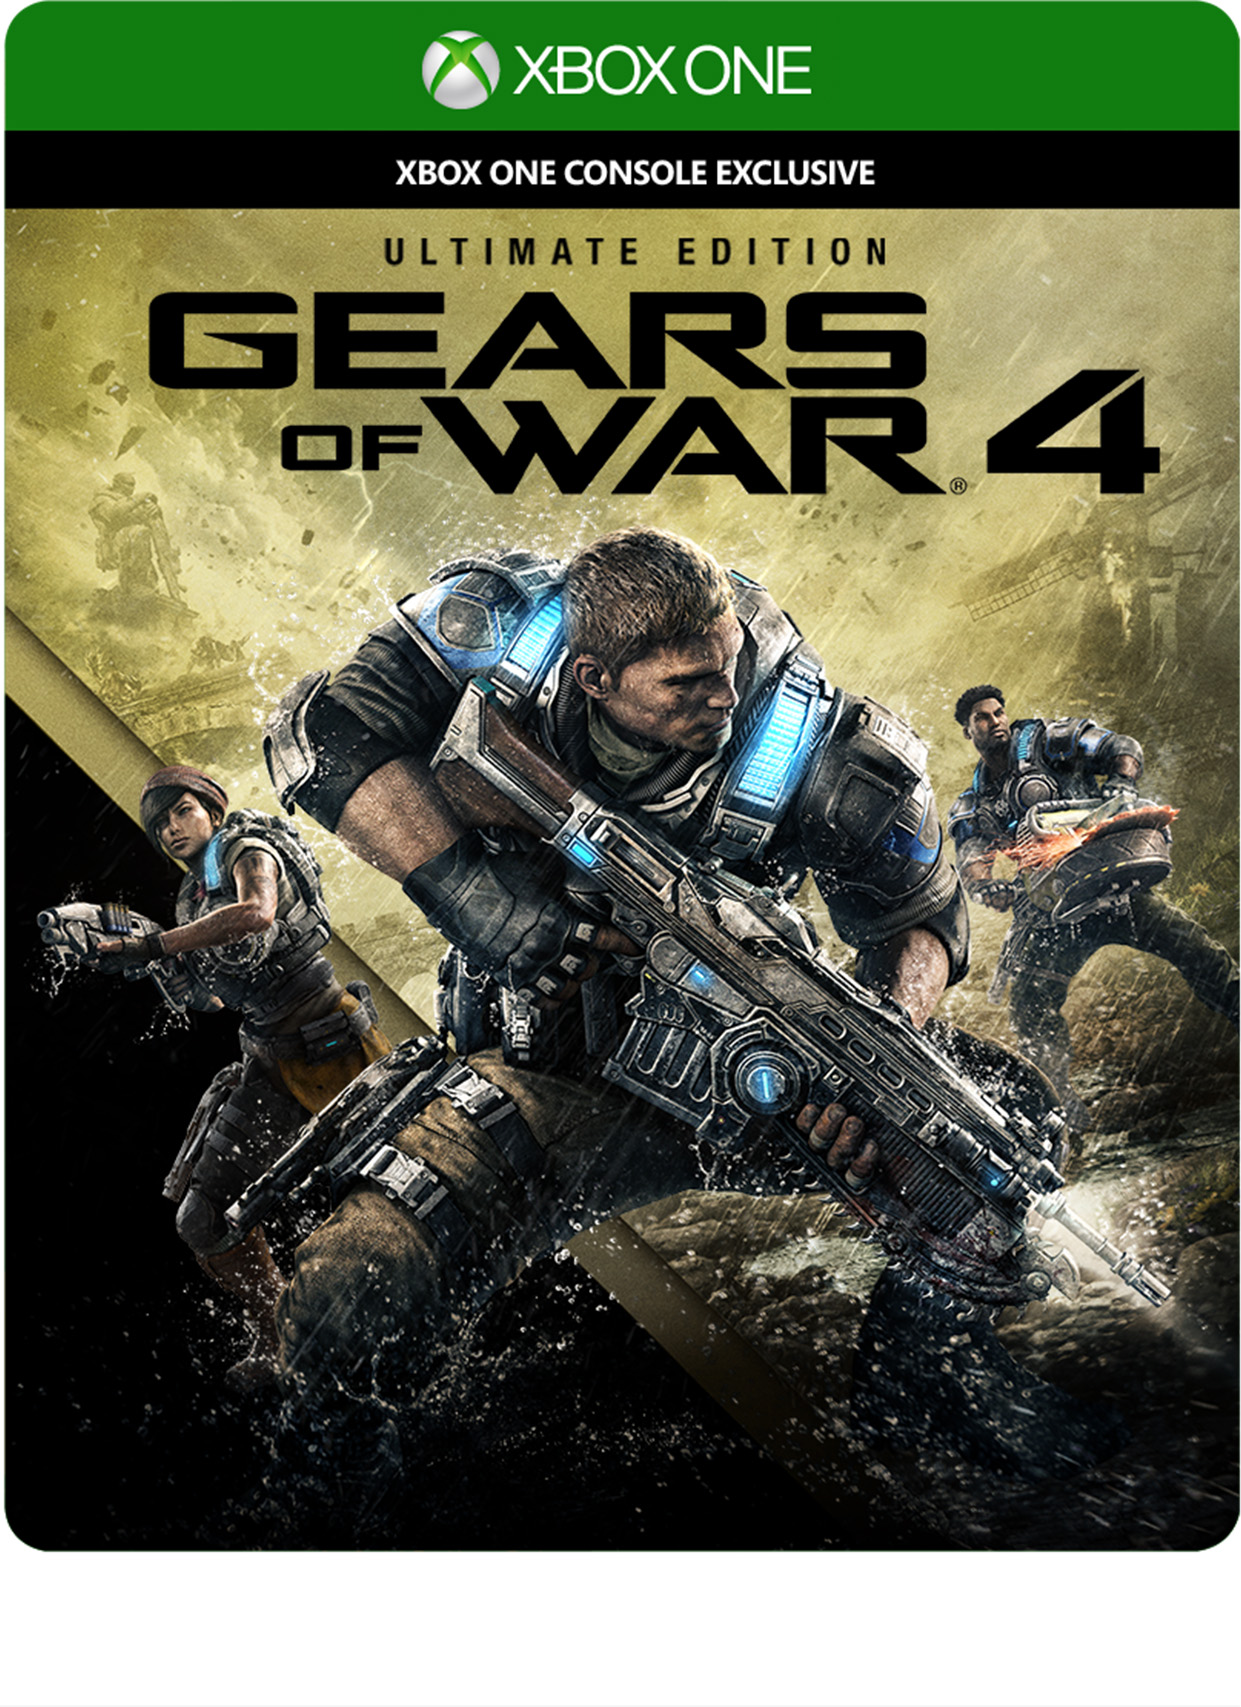 Gears of War 4 Ultimate Edition for Xbox One 26F-00001